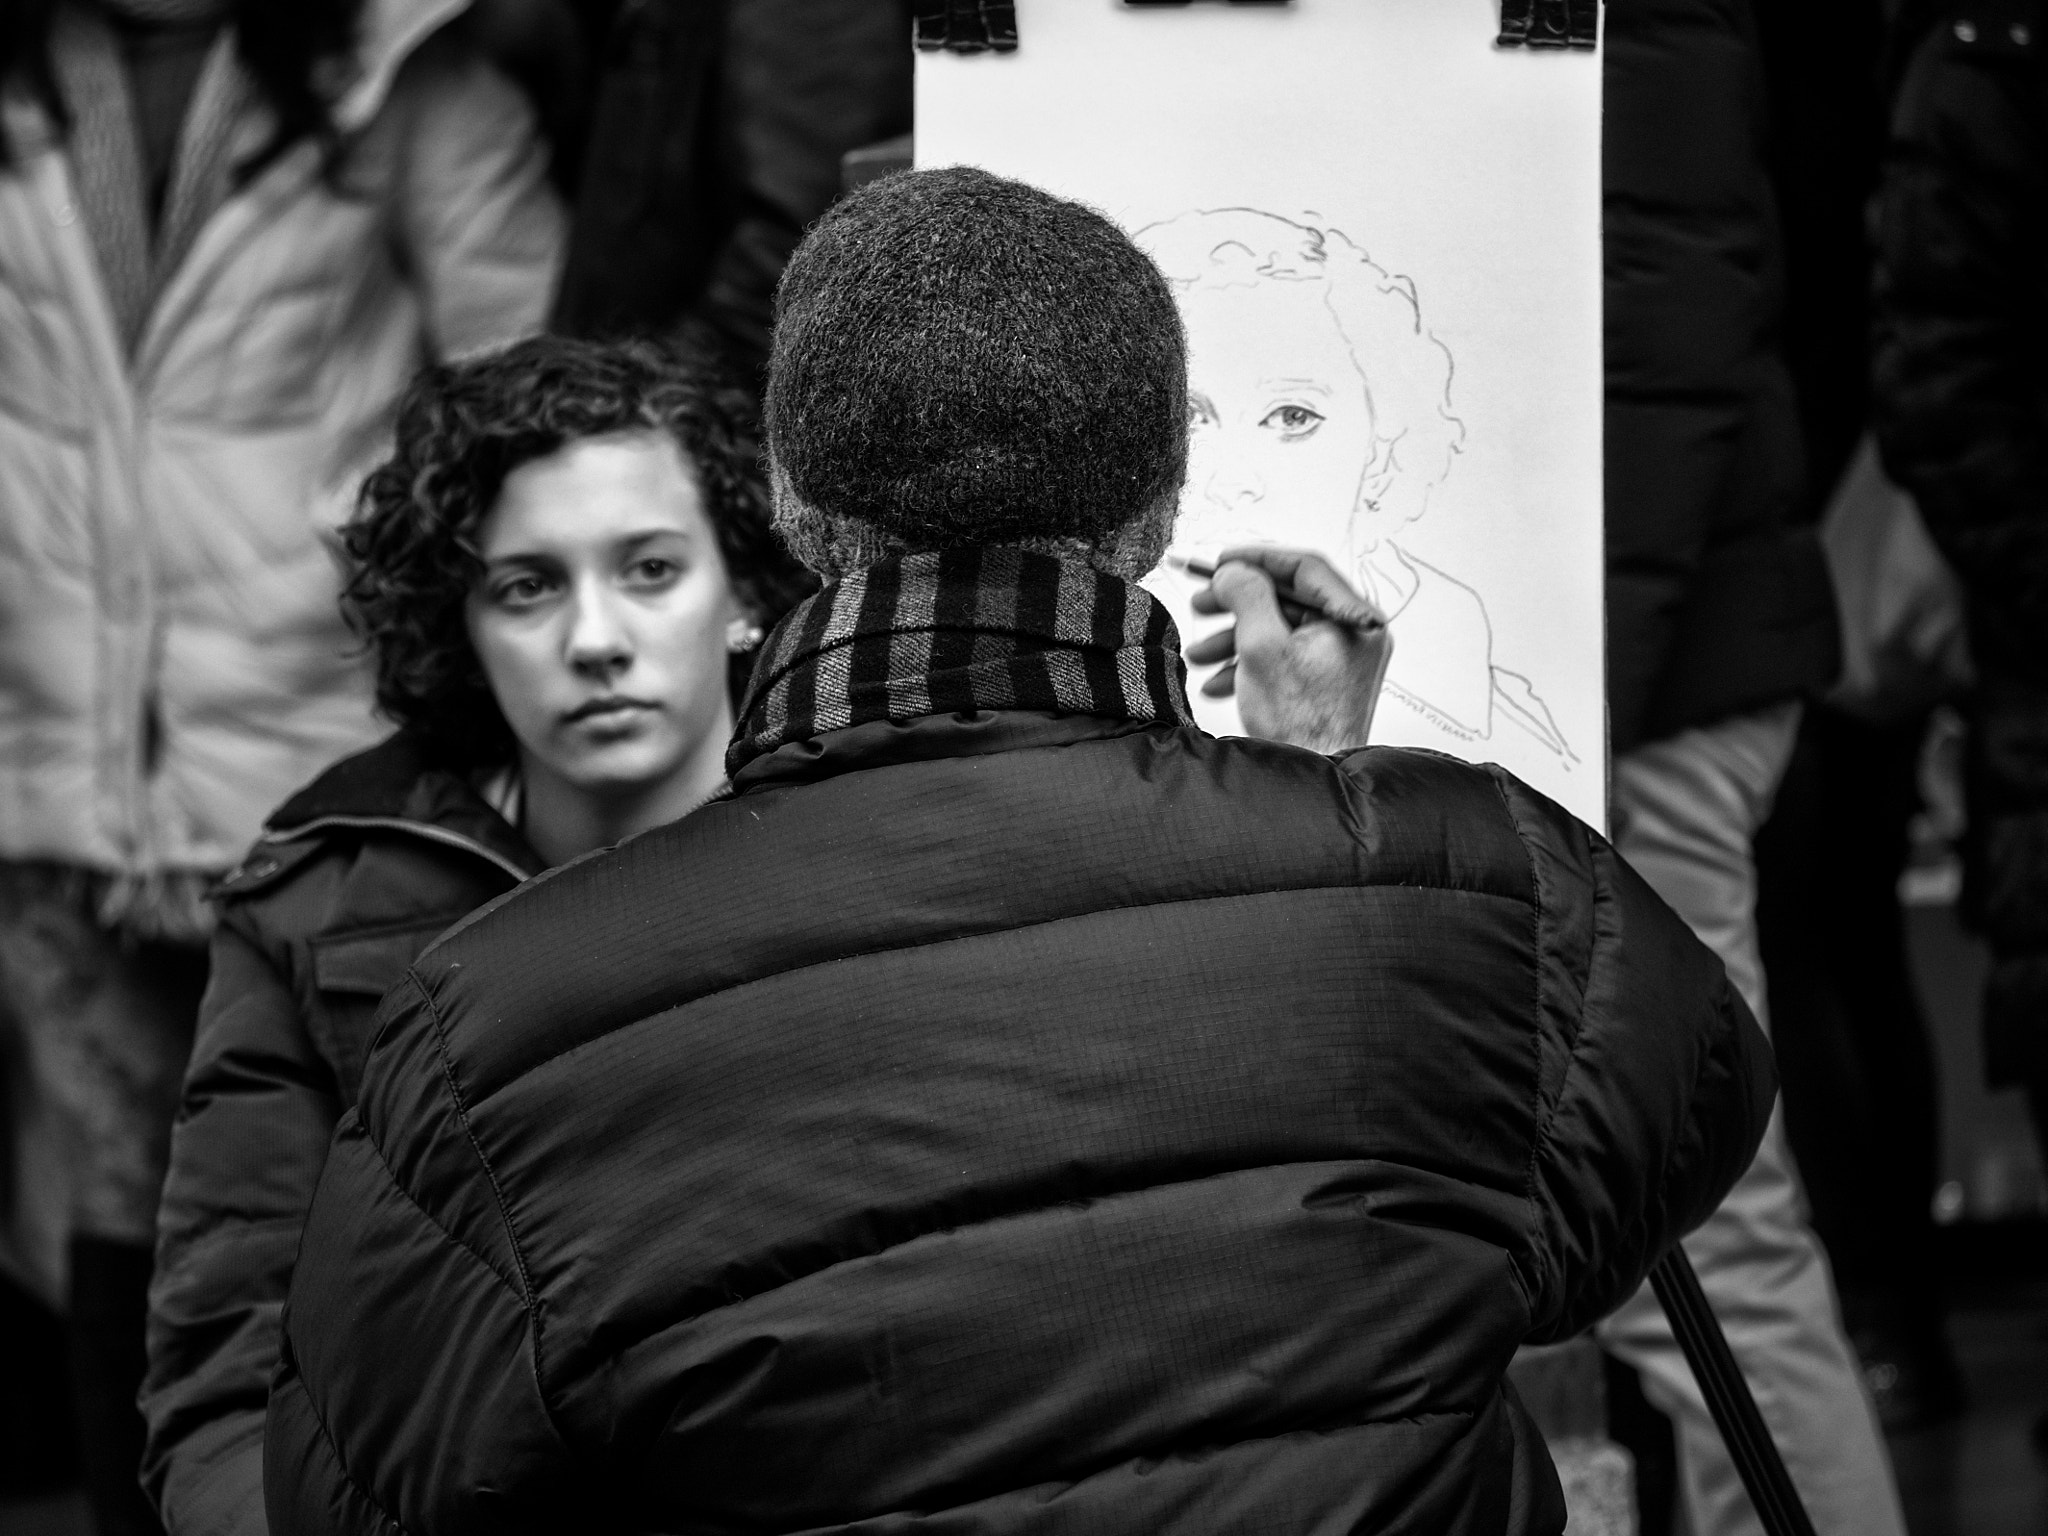 Photograph Street Painter by Giovanni Sottile on 500px